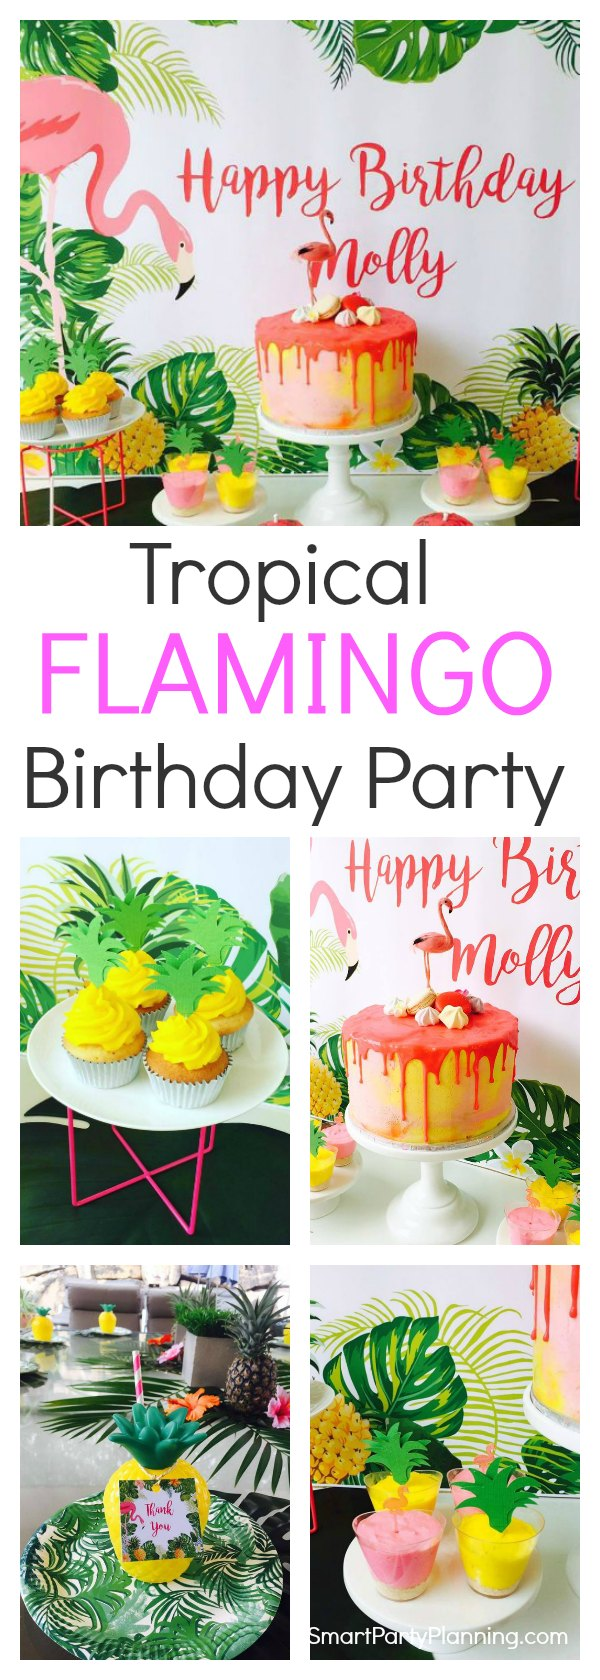 Look no further for a fabulous flamingo birthday party.  It's tropical, it's fun, it's bright and cheerful and kids love this party theme. With party décor the kids will go wild for, this party has fun written all over it.